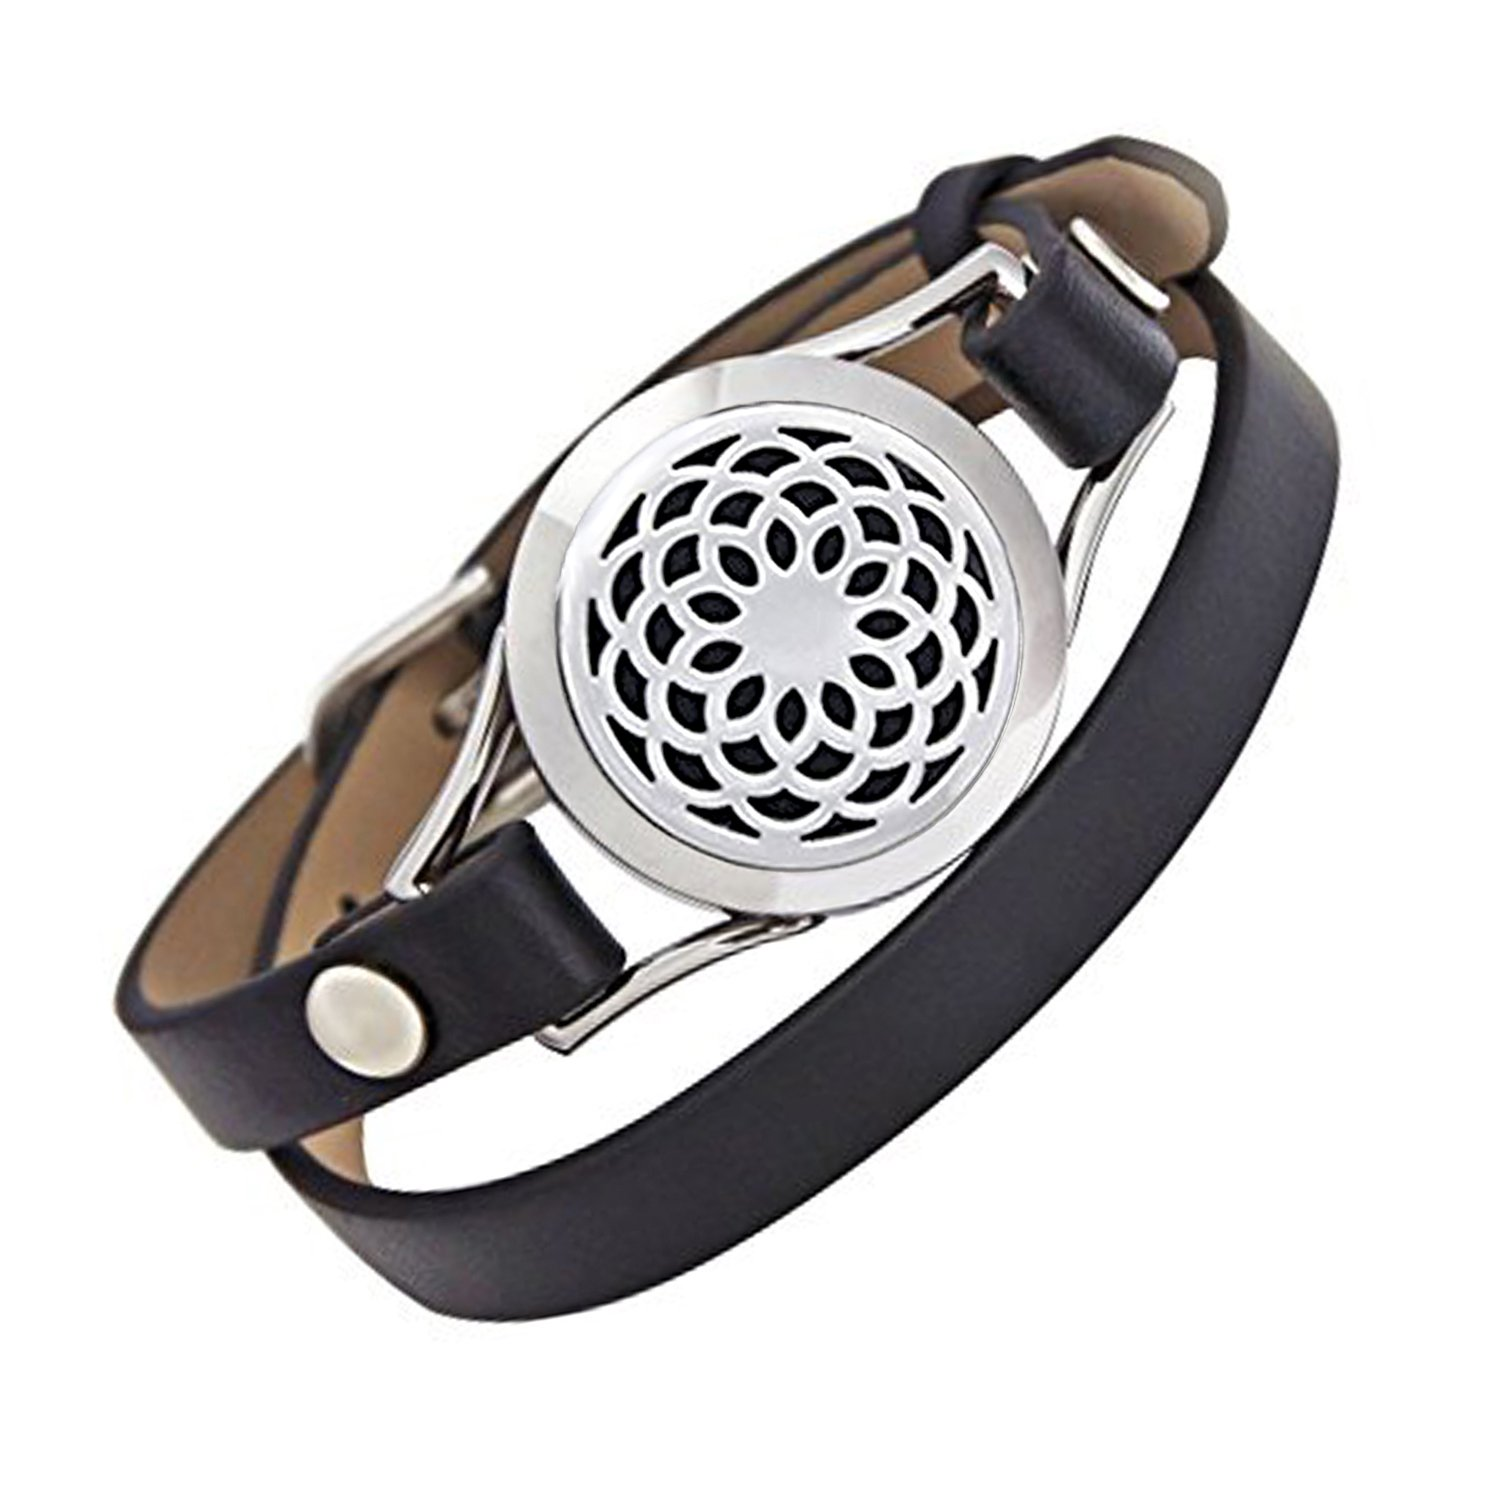 EVERLEAD Carving Round Aromatherapy Essential Oils Diffuser Locket Bracelet 316l Stainless Steel Real Leather Bracelet Everlead Inc LB070S2501